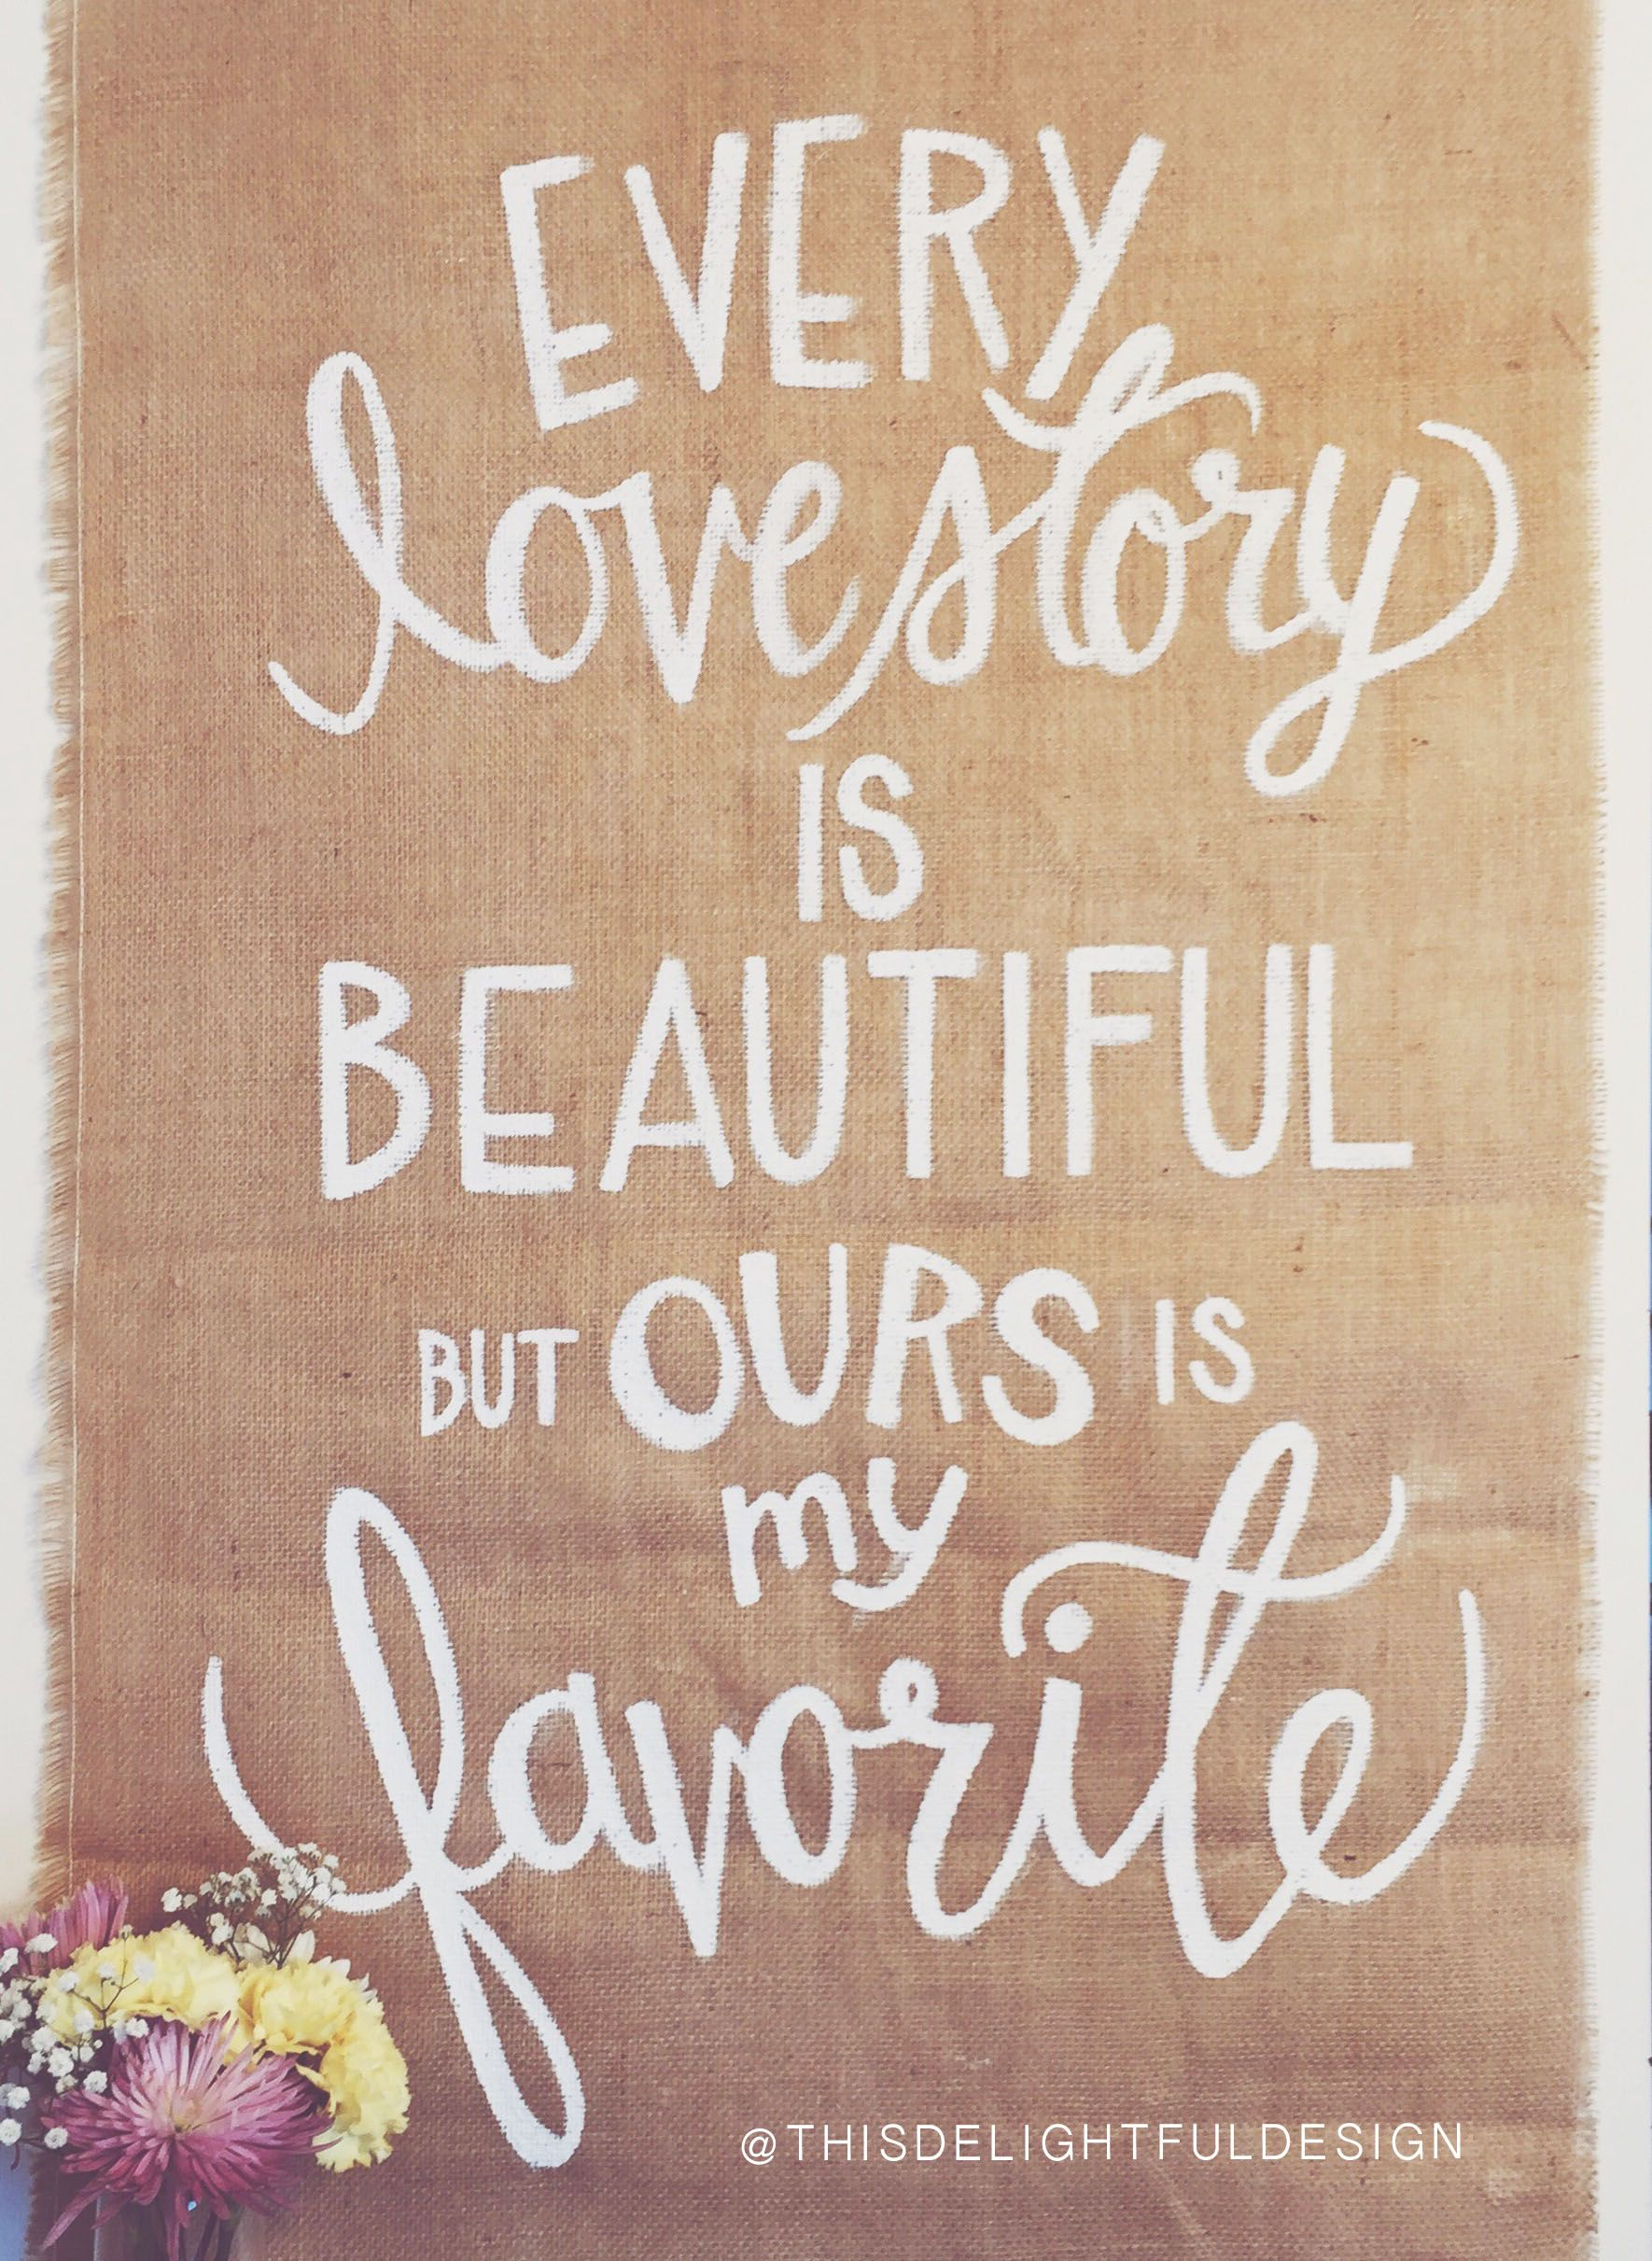 Wedding decorations quotes  Every love story is beautiful but ours is my favorite  Wedding